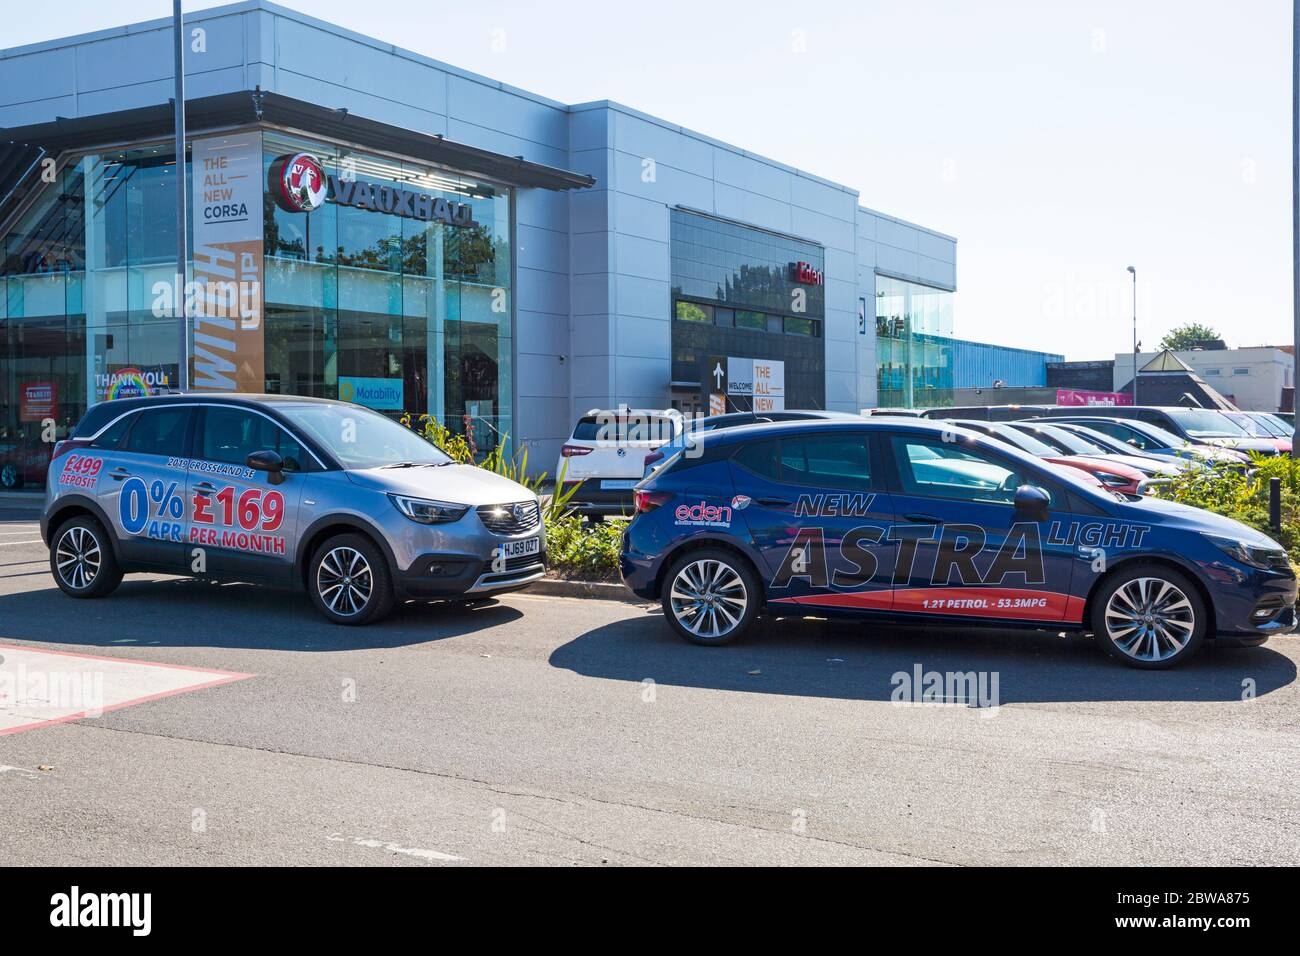 Poole, Dorset UK. 31st May 2020. Car dealers showrooms can reopen in England tomorrow, 1st June, if COVID safe, following the Governments easing of Coronavirus restrictions to kickstart the economy.  Eden Vauxhall at Branksome, Poole. Credit: Carolyn Jenkins/Alamy Live News Stock Photo